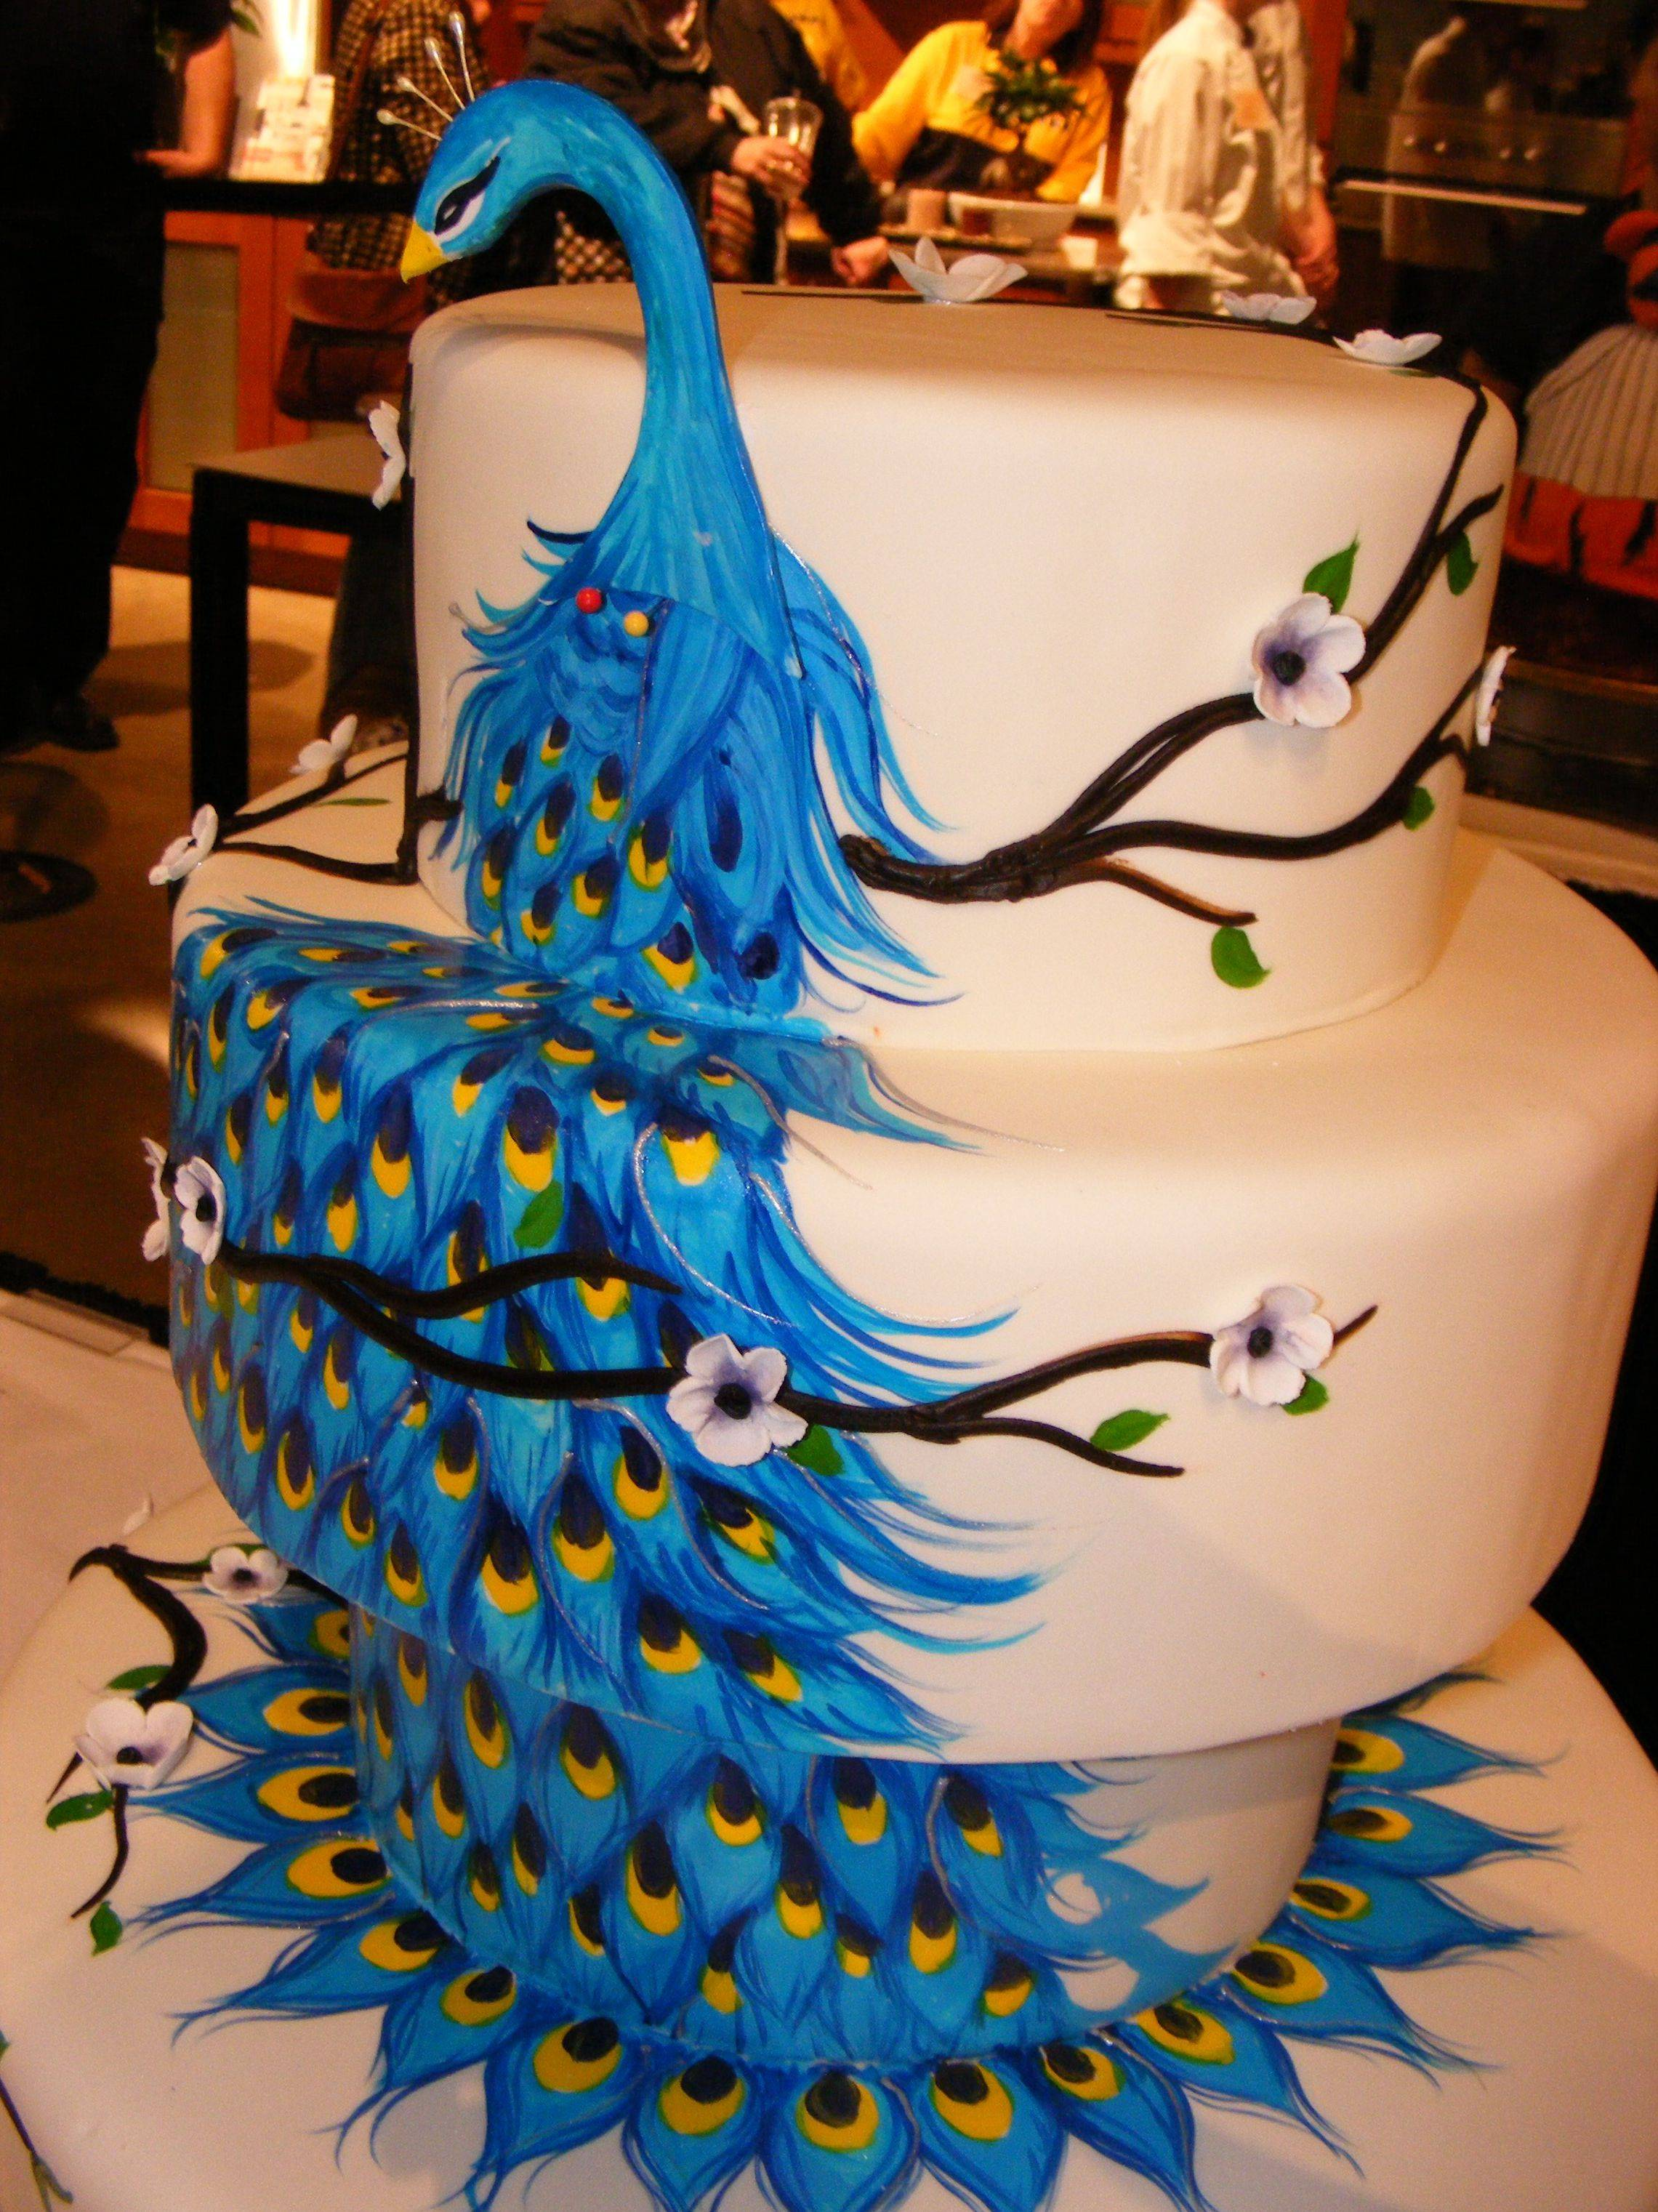 Dina Cimarusti of Alliance Bakery won CARBA's 2011 cake competition with this fanciful creation.